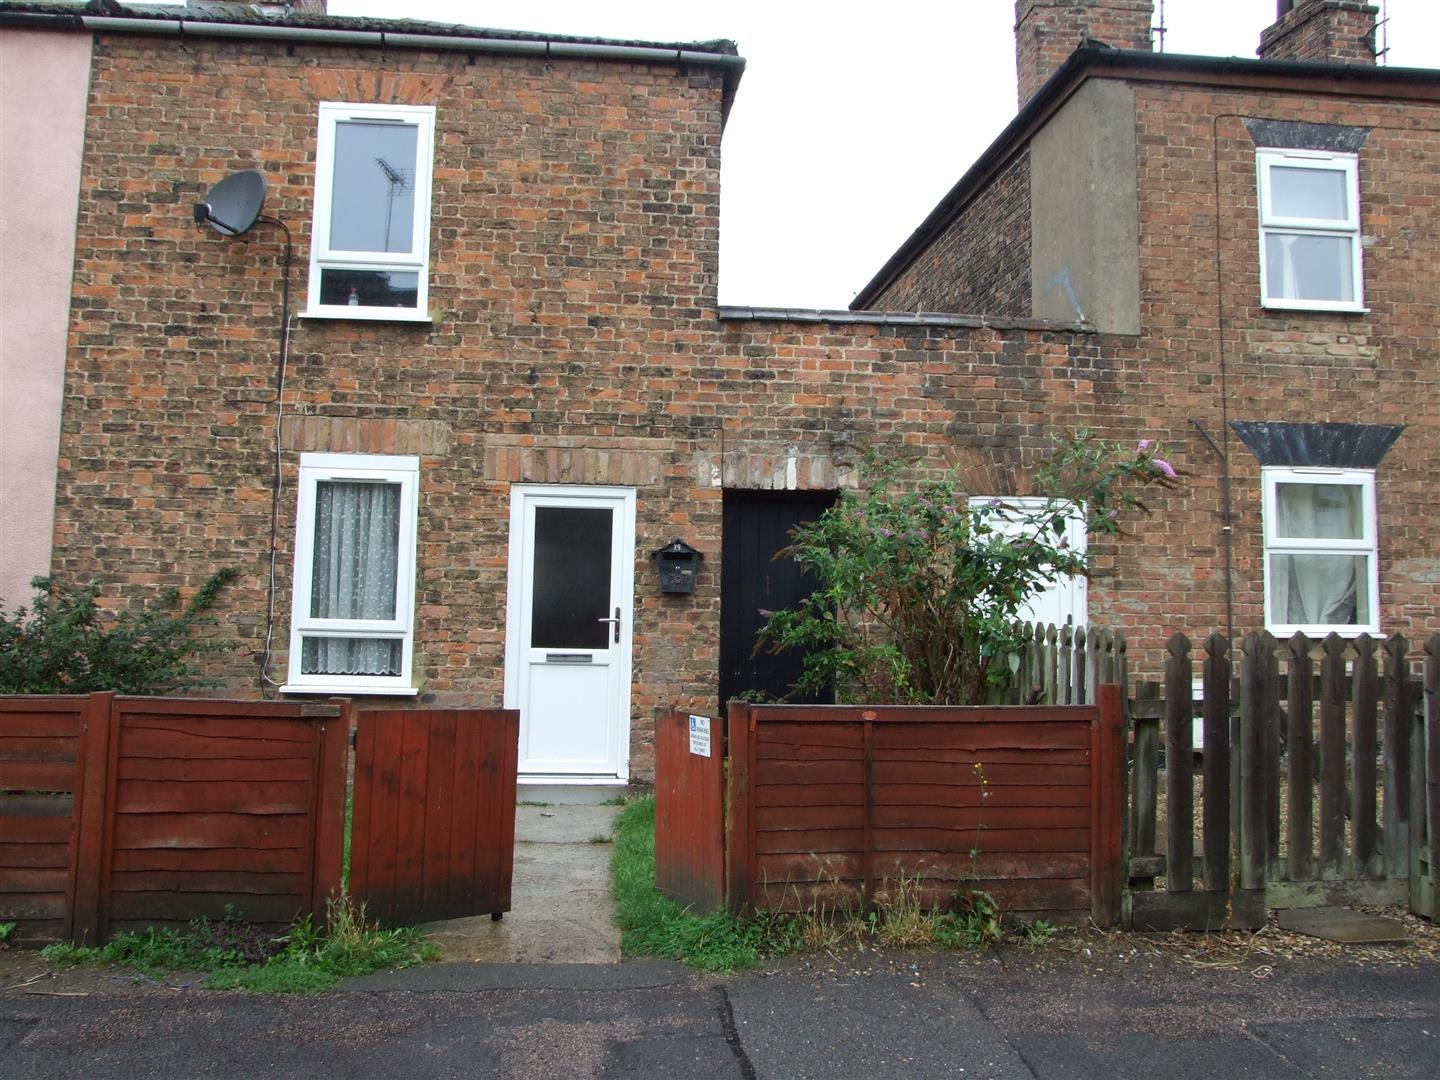 2 bed house to rent in Sutton Bridge Spalding, PE12 9UJ - Property Image 1